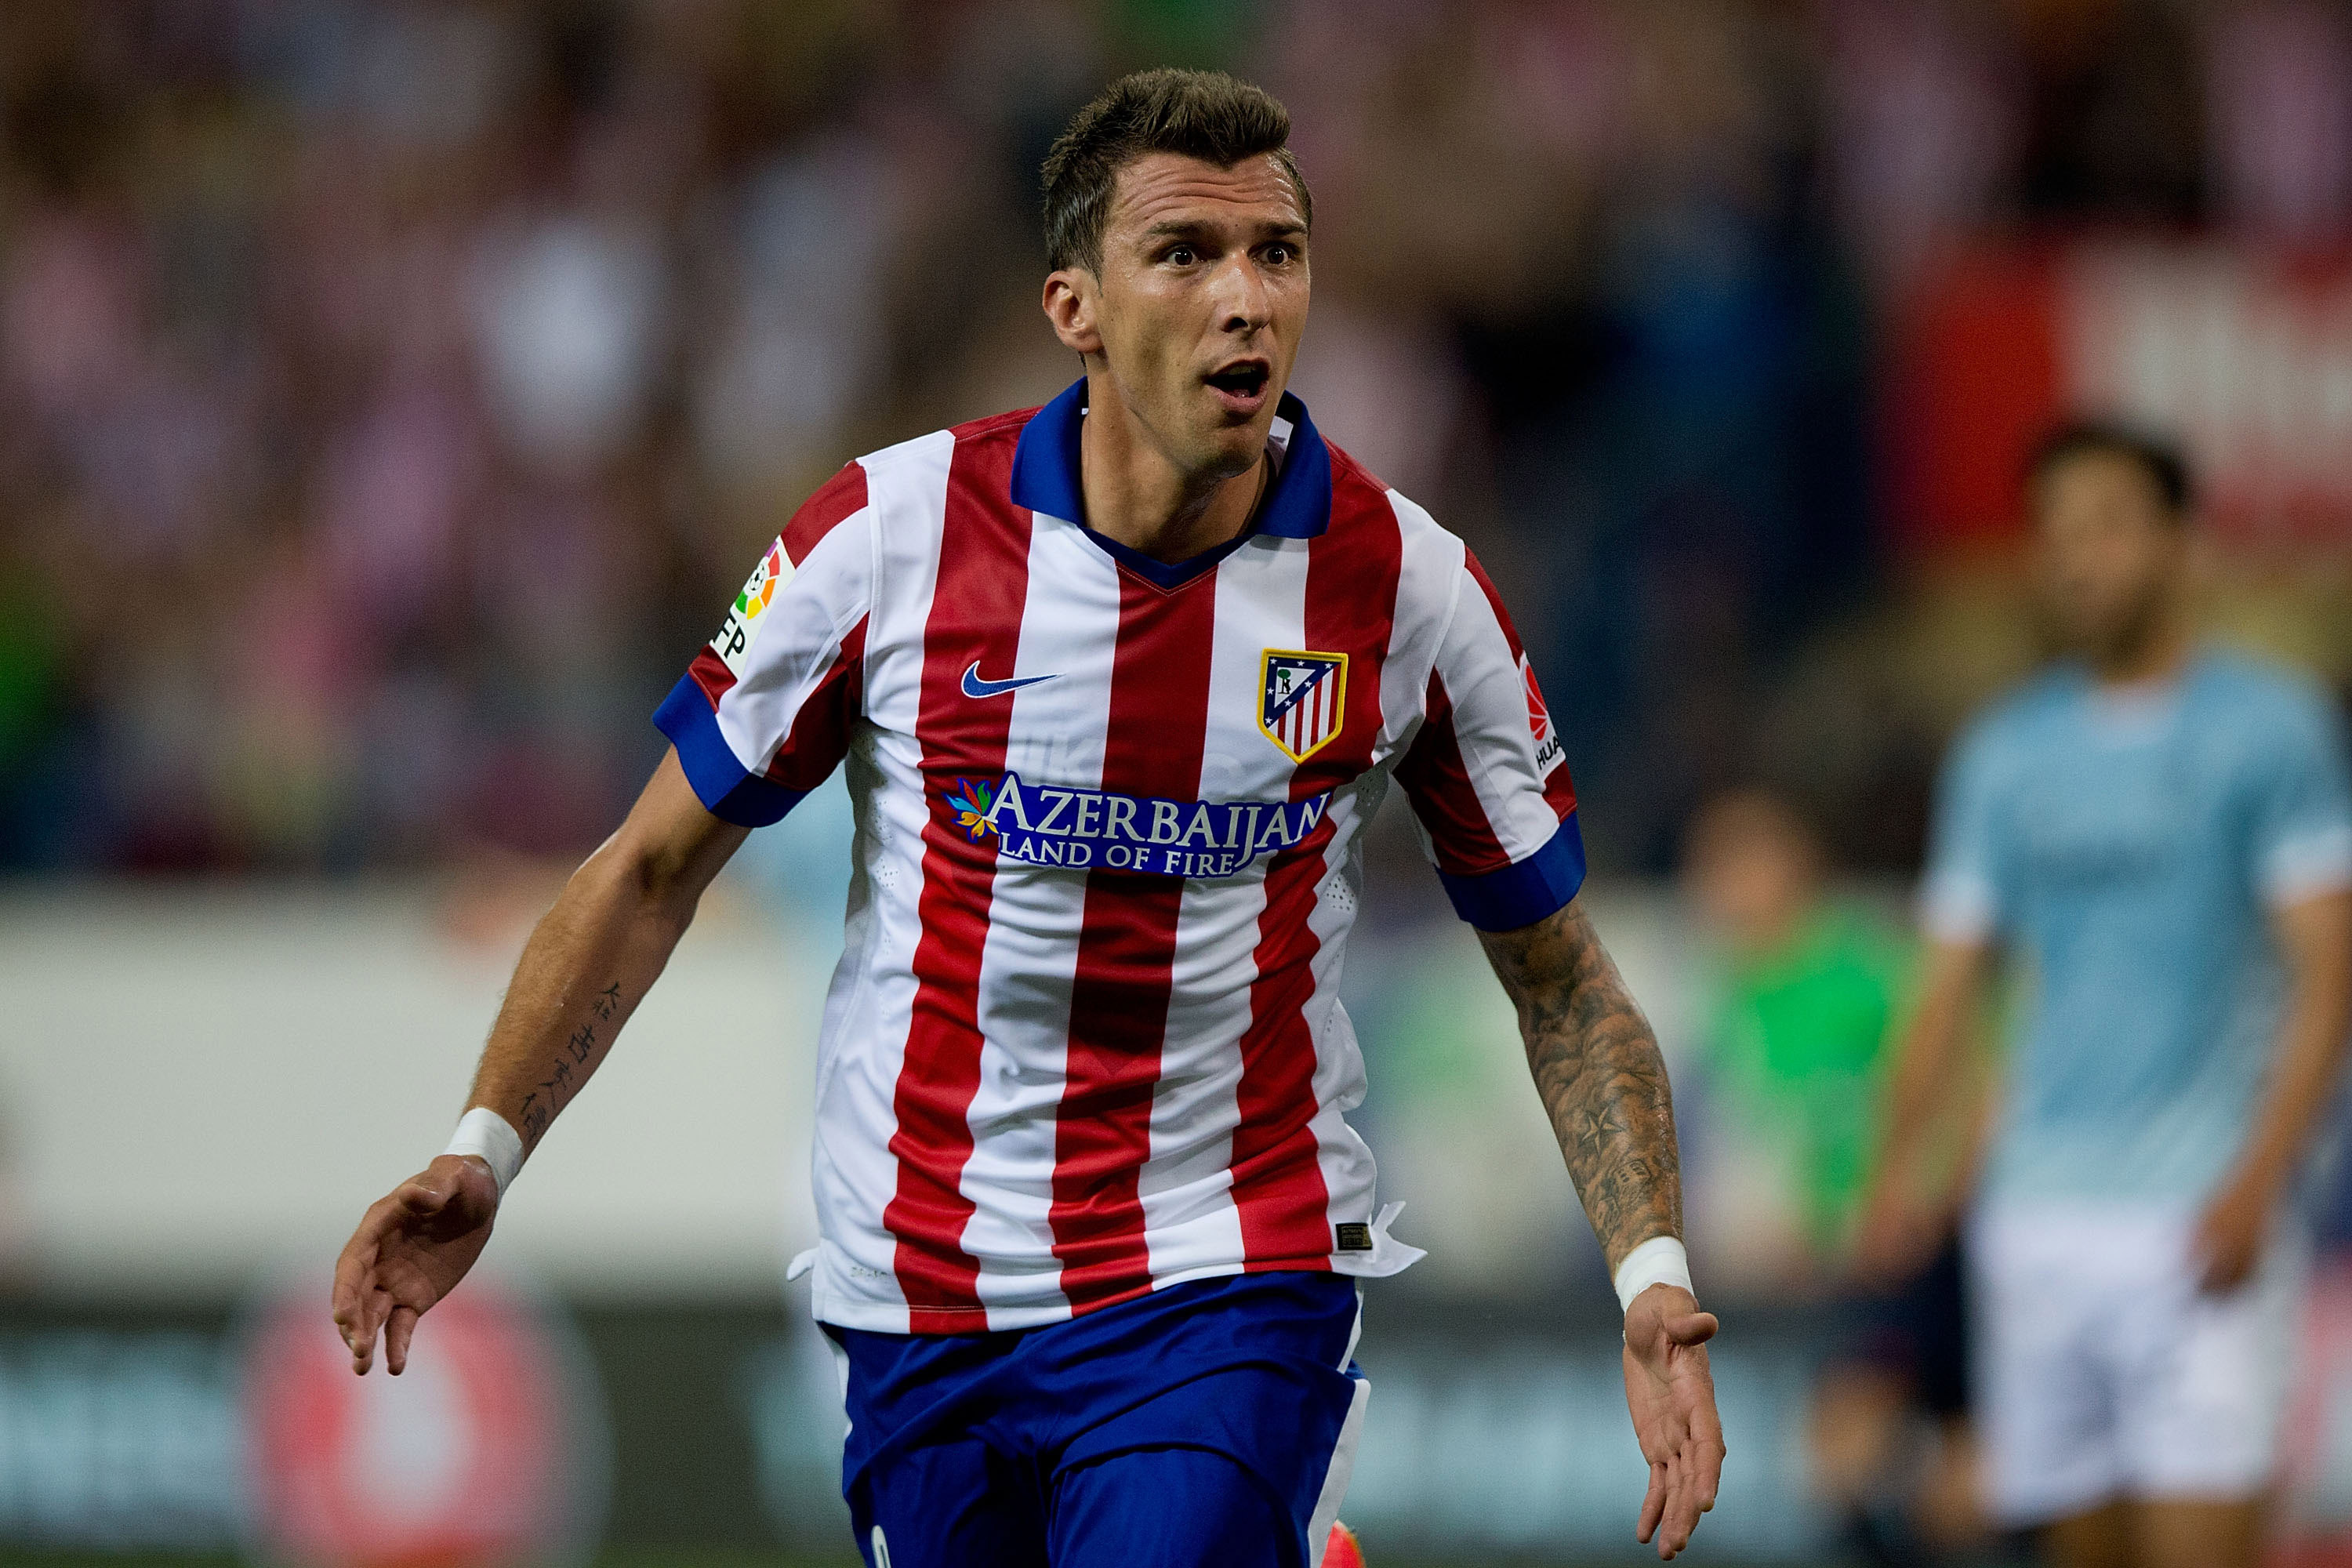 MADRID, SPAIN - AUGUST 30:  Mario Mandzukic of Atletico de Madrid celebrates scoring their second goal during the La Liga match between Club Atletico de Madrid and SD Eibar at Vicente Calderon Stadium on August 30, 2014 in Madrid, Spain.  (Photo by Gonzalo Arroyo Moreno/Getty Images)